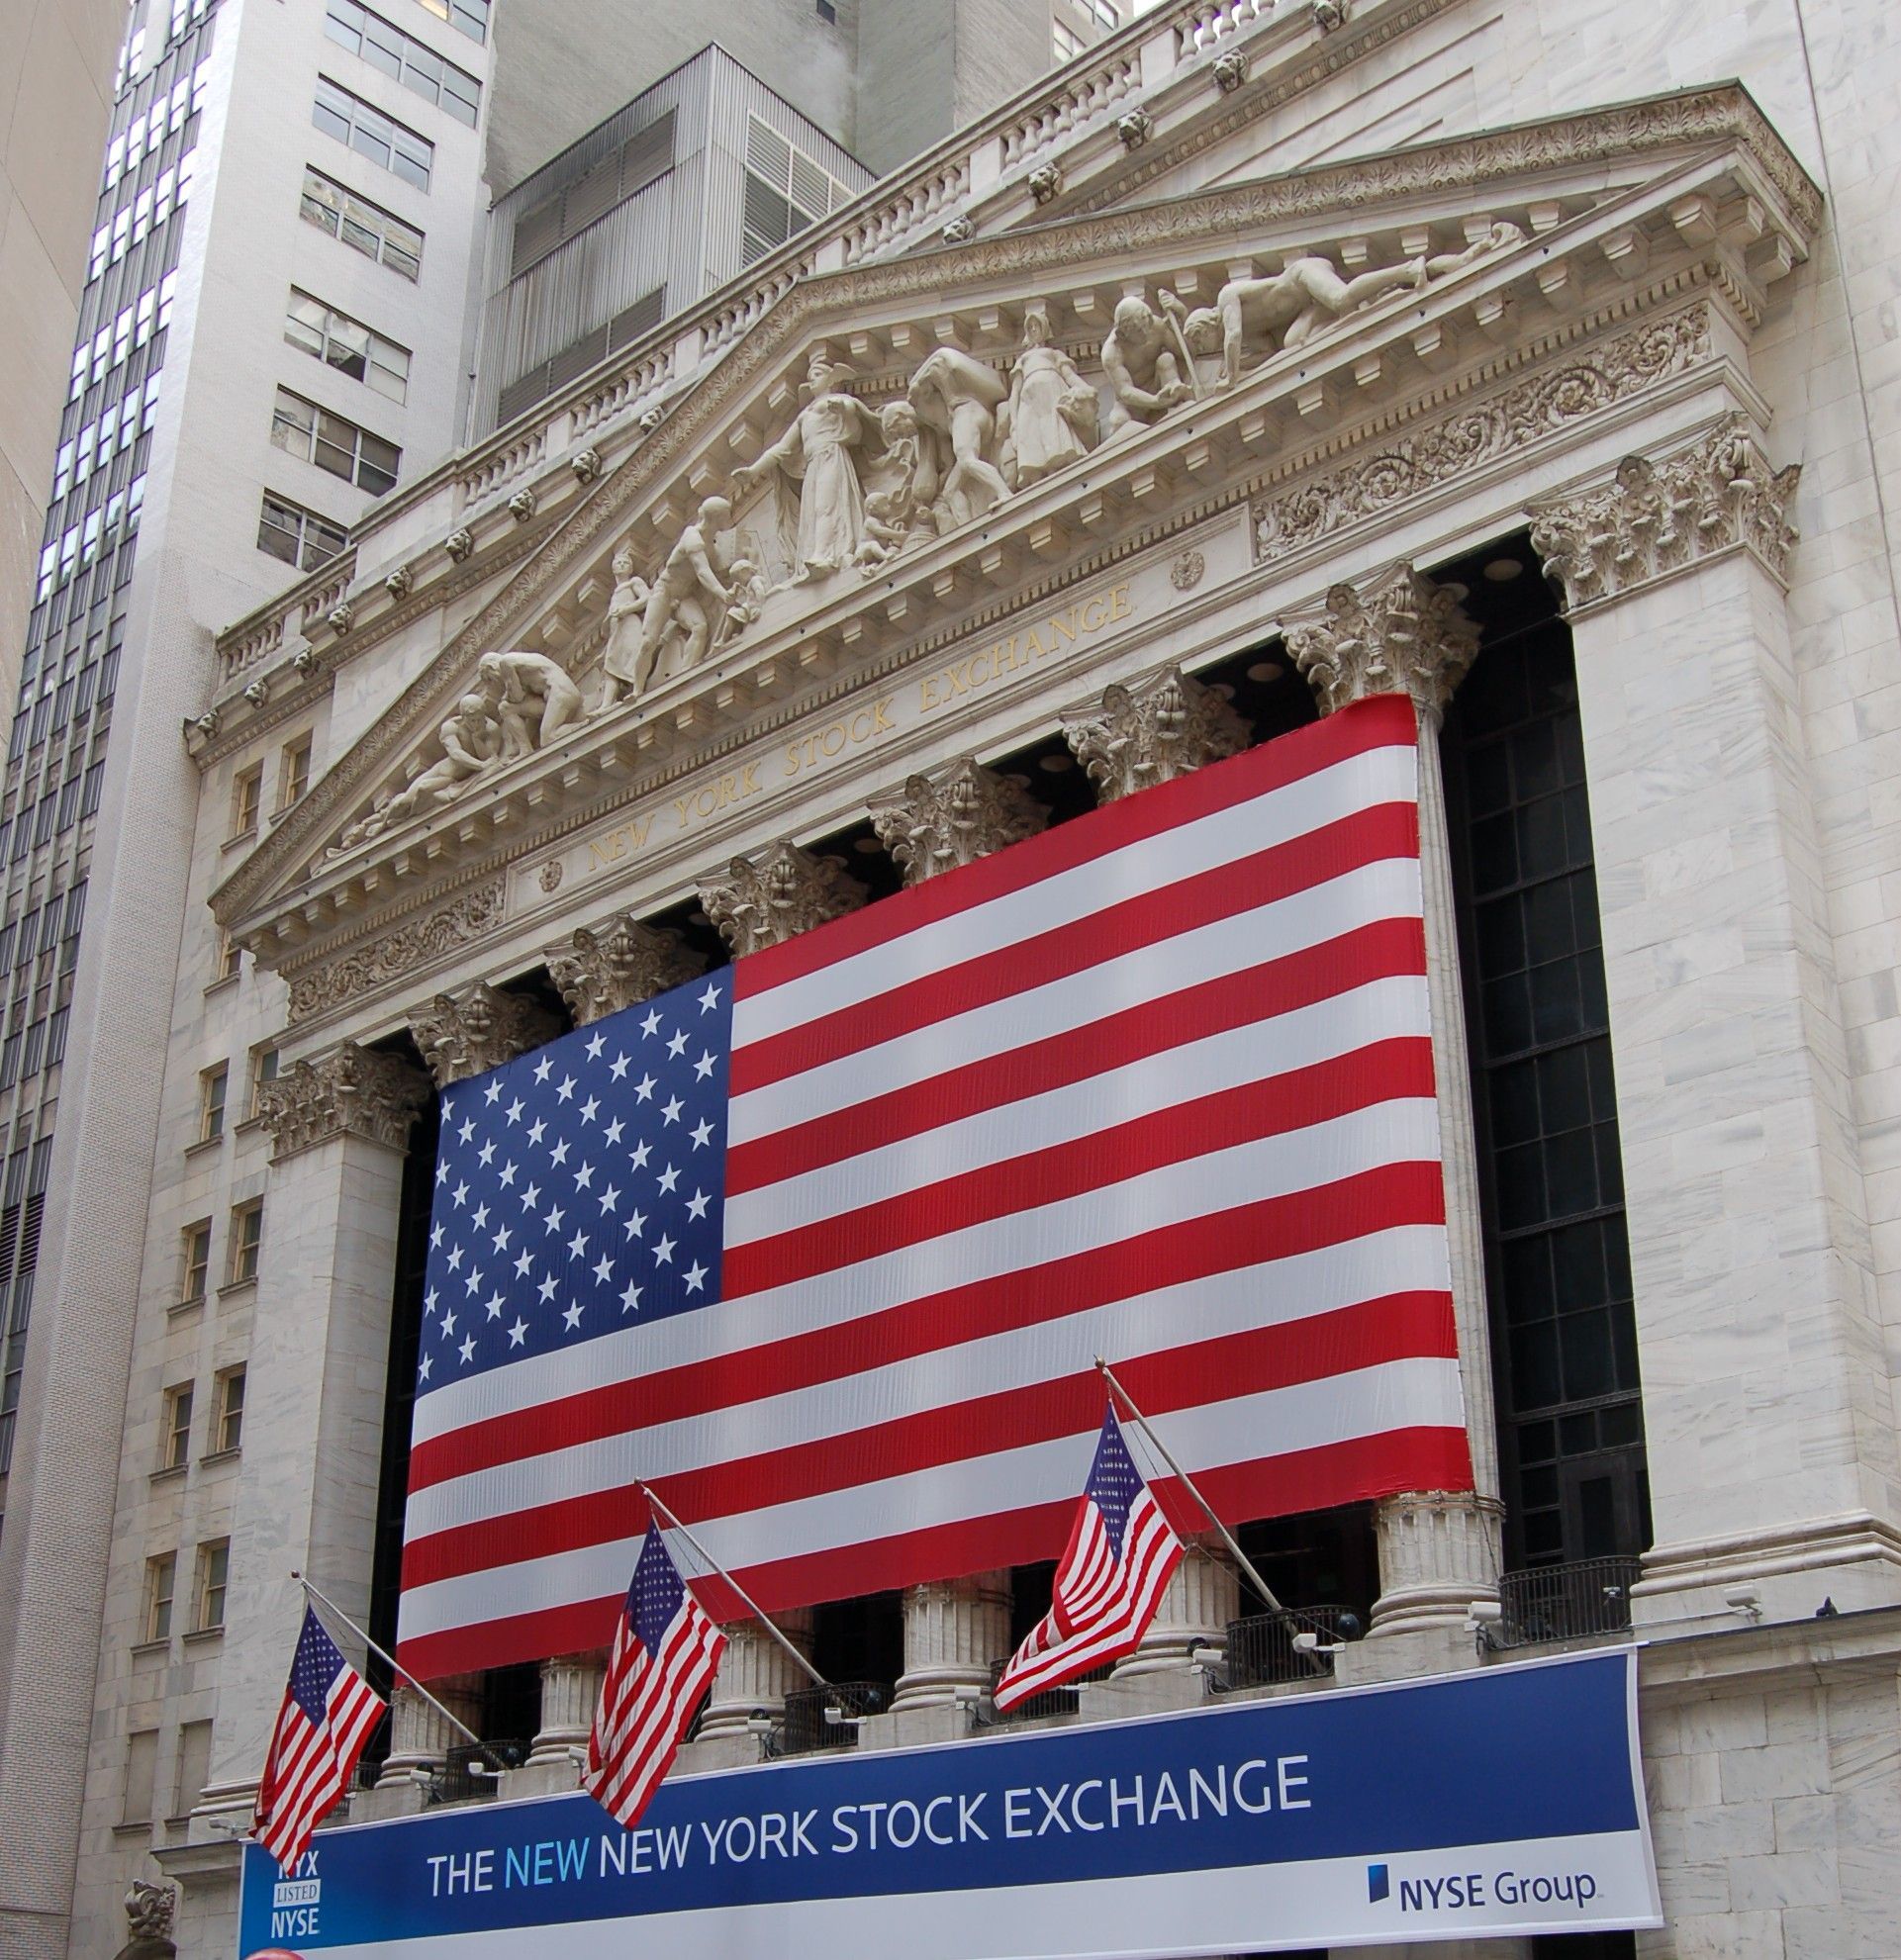 N Y C 2002 New York Stock Exchange Wall St Wall Street Stock Market Stock Exchange New York